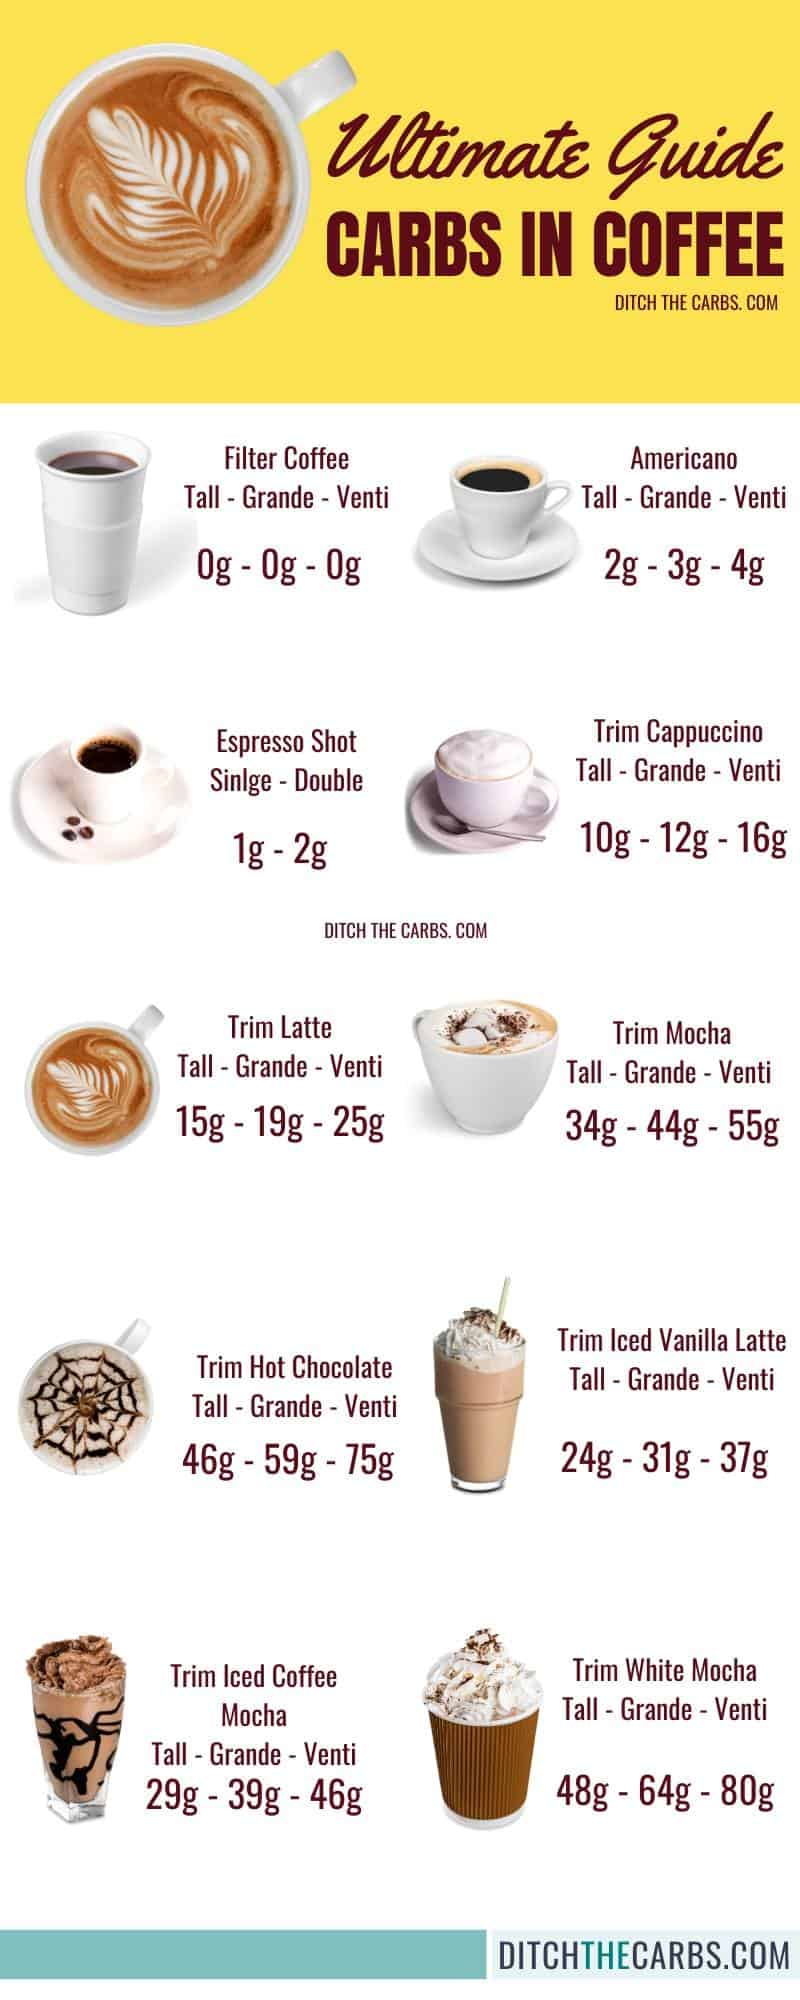 The Ultimate Guide to carbs on coffee.